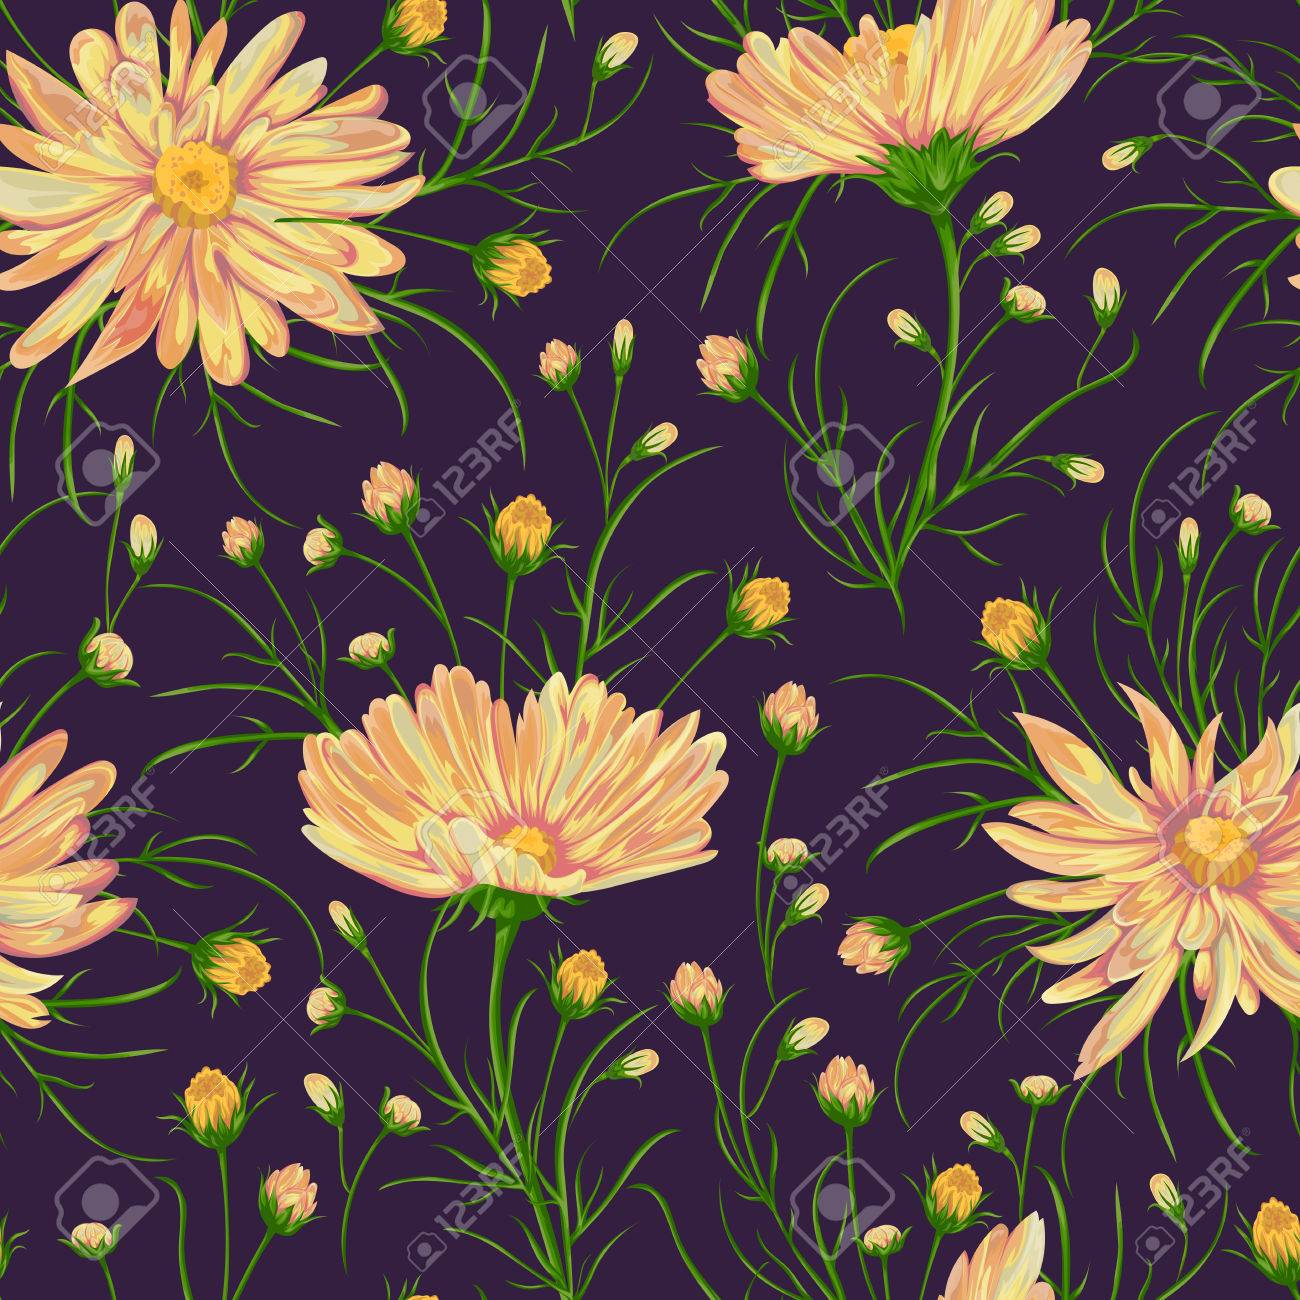 Seamless Pattern With Chamomile Flowers Rustic Floral Background Vintage Vector Illustration In Watercolor Style